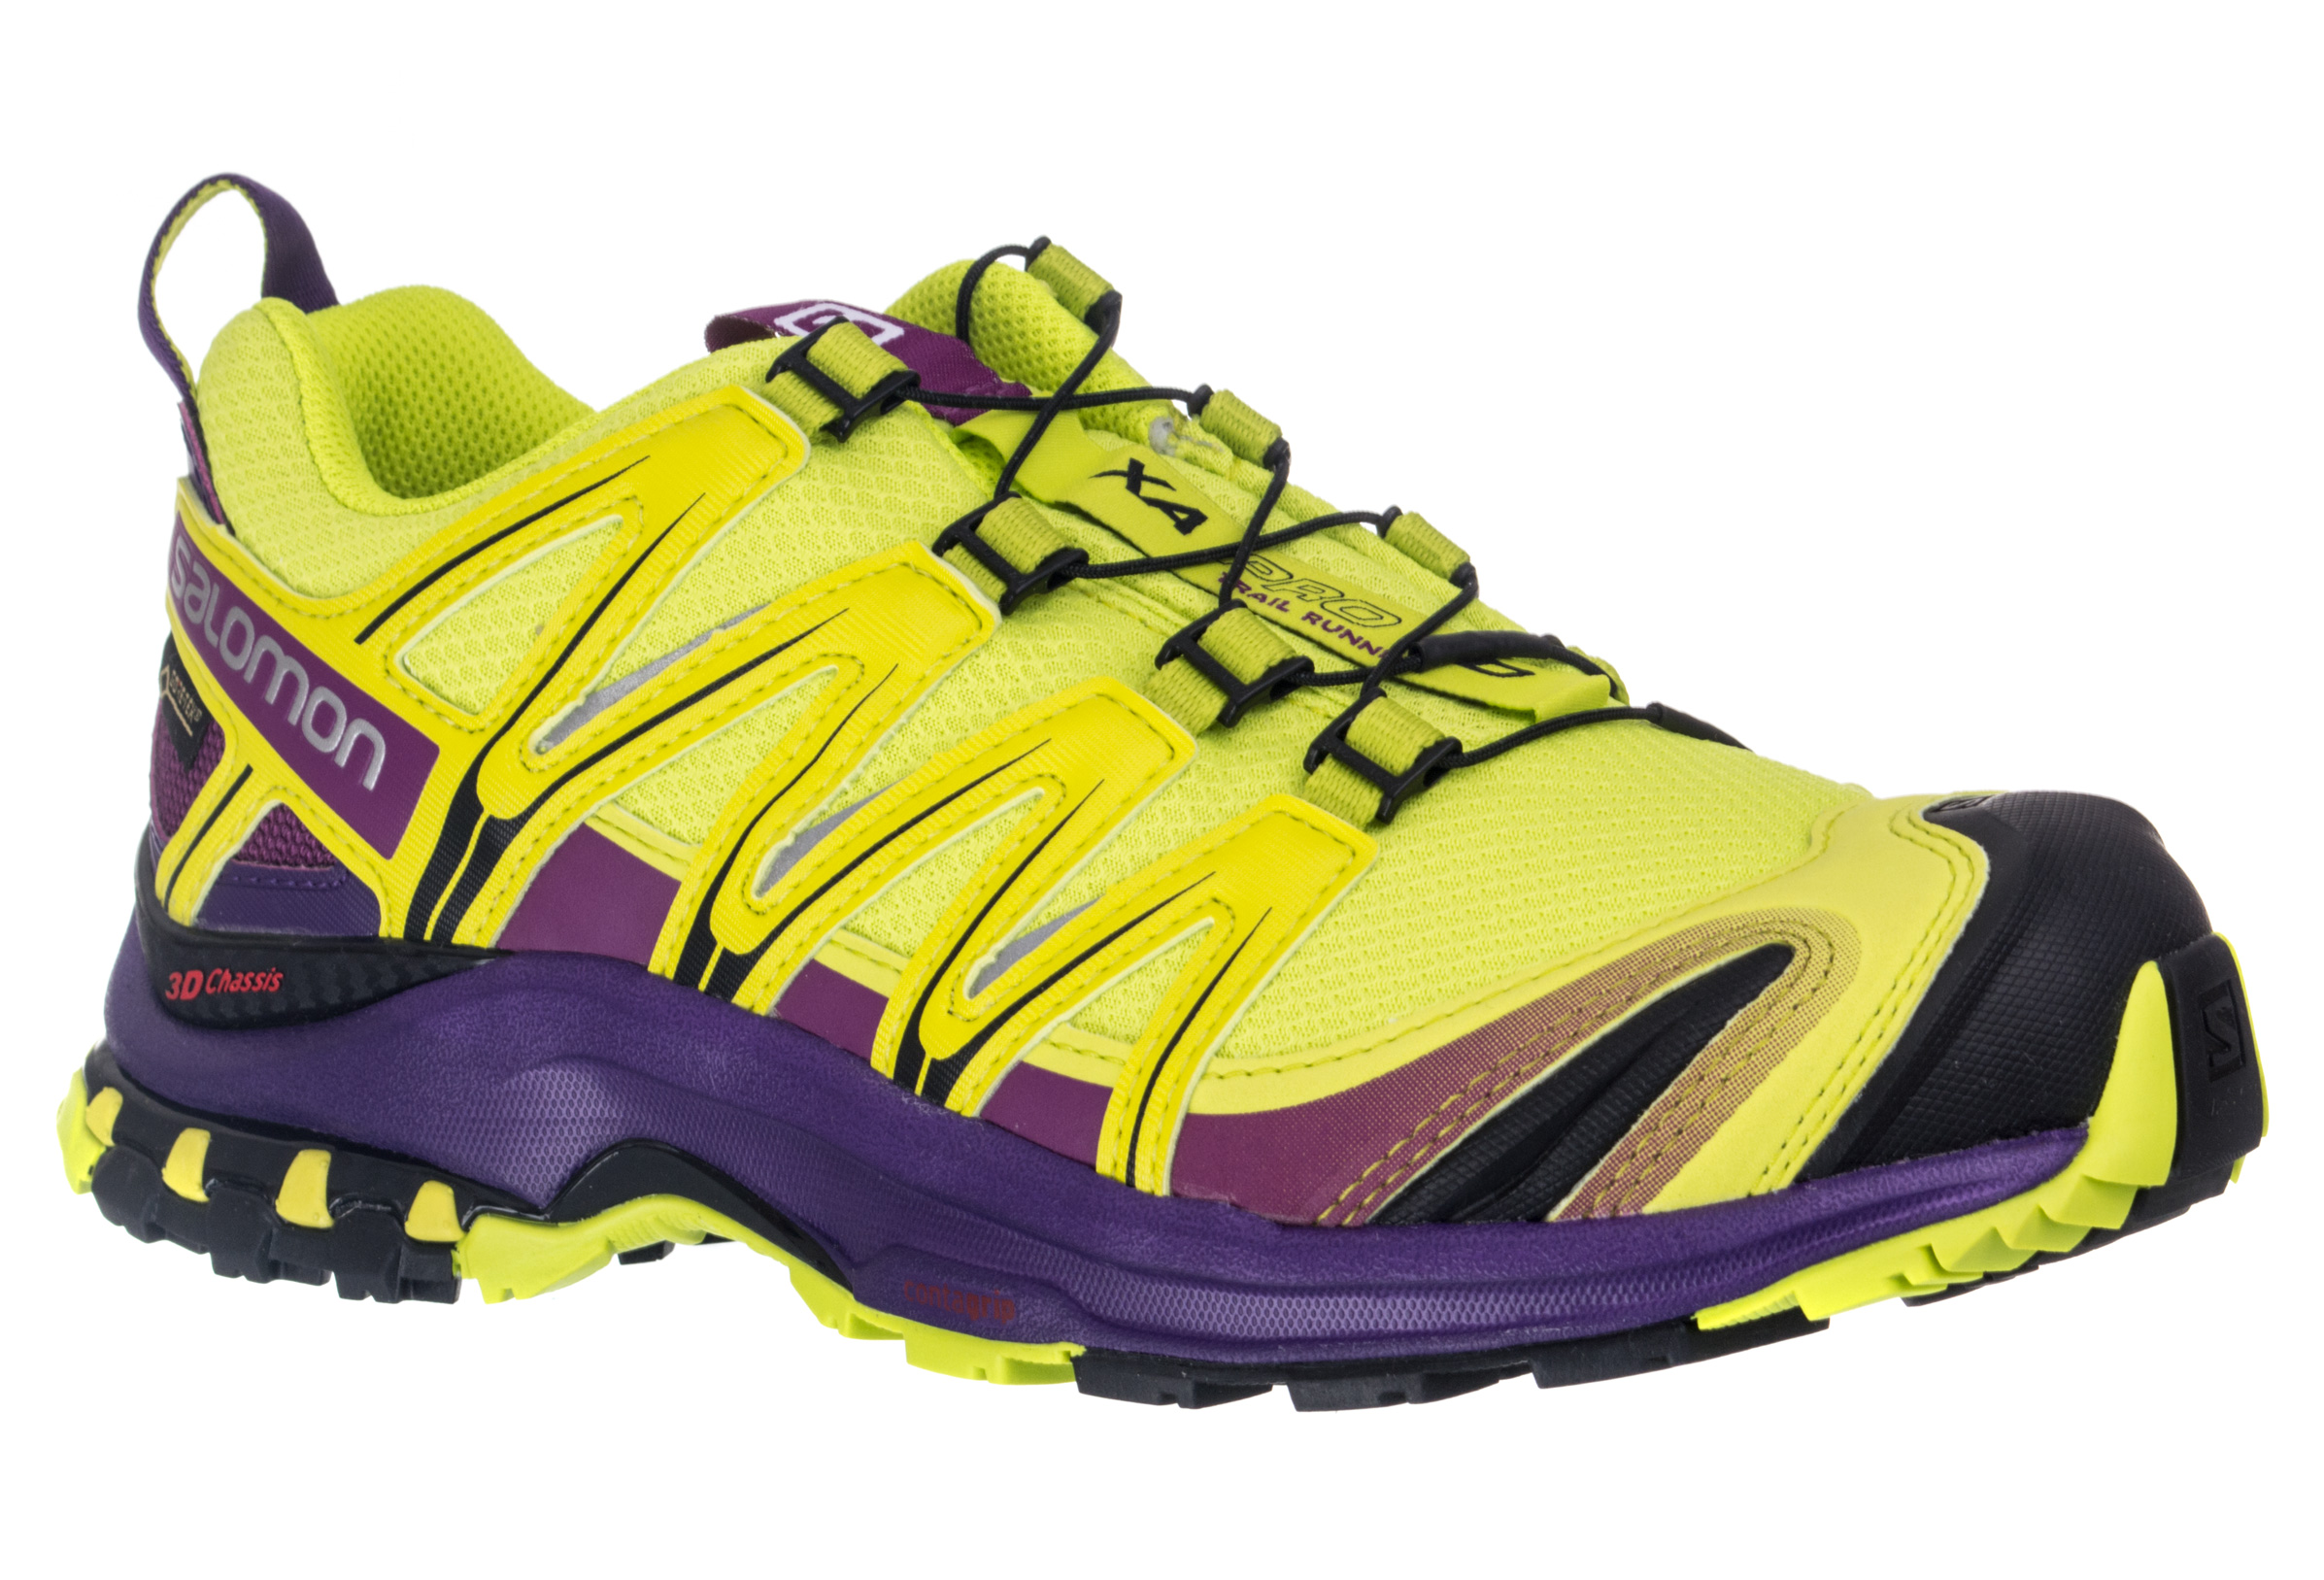 3e1525cabdee98 Scarpe SALOMON XA PRO 3D GTX Donna Giallo Viola | Alltricks.it